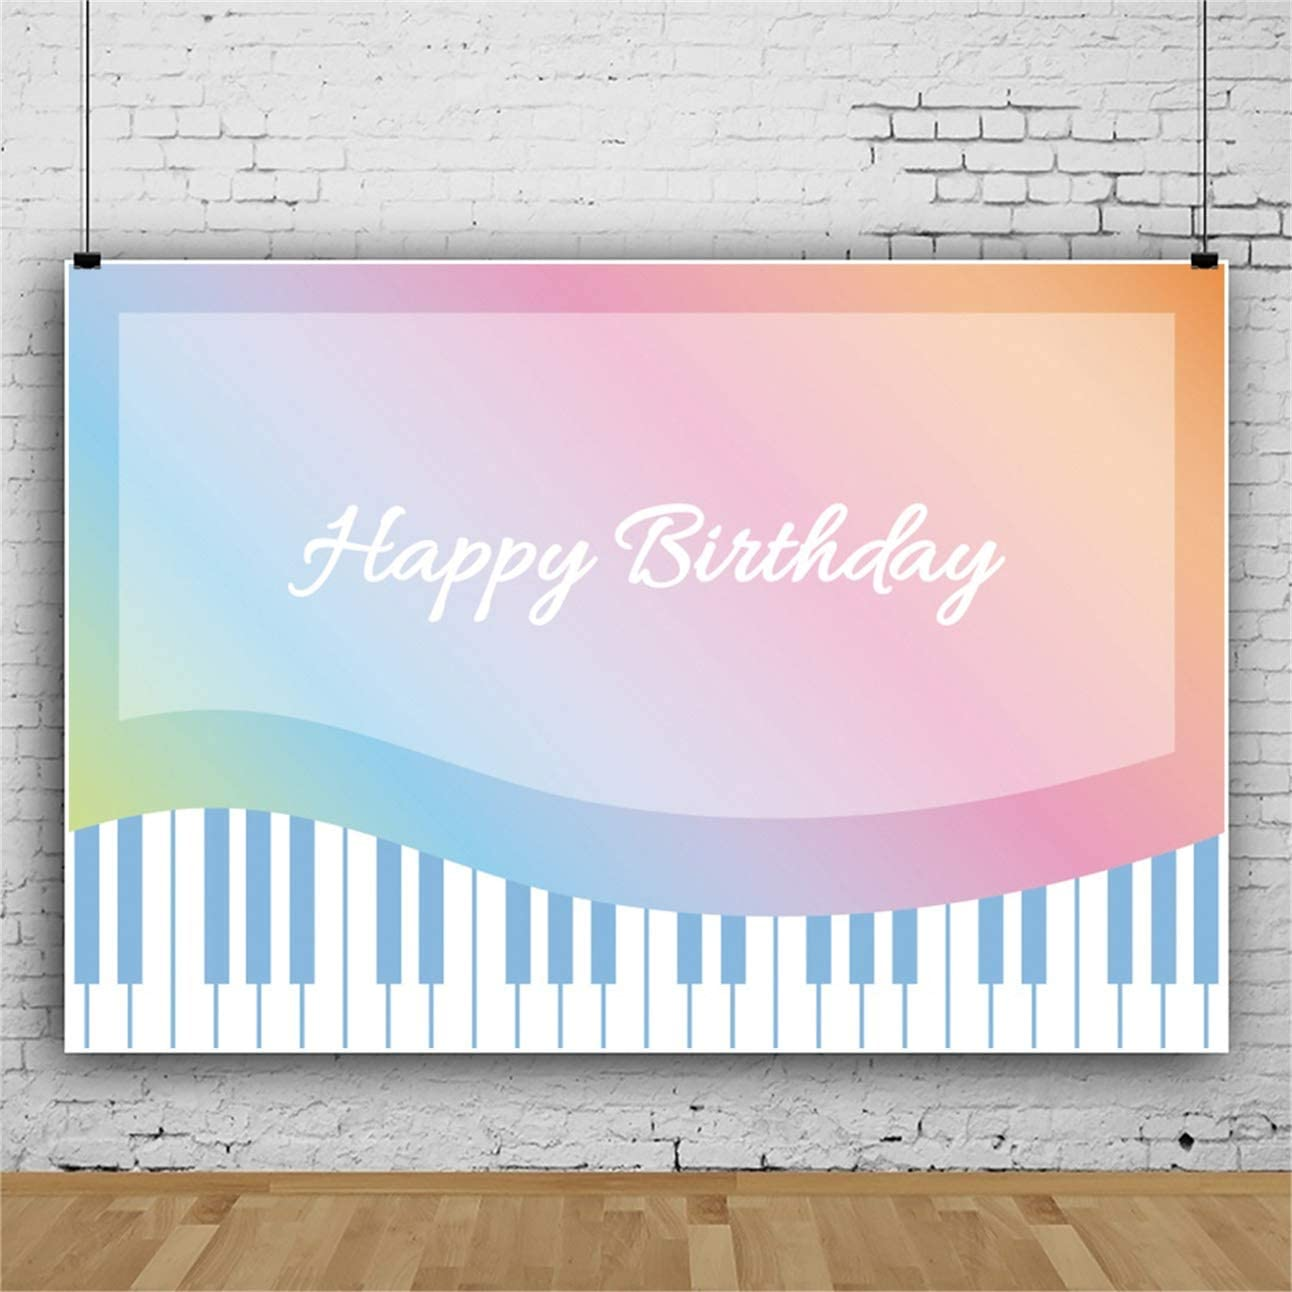 YEELE Cartoon Chemistry Lab Backdrop 10x8ft Kids Birthday Party Photography Background School Theme Party Decoration Son Daughter Students Artistic Portrait Photo Booth Props Digital Wallpaper